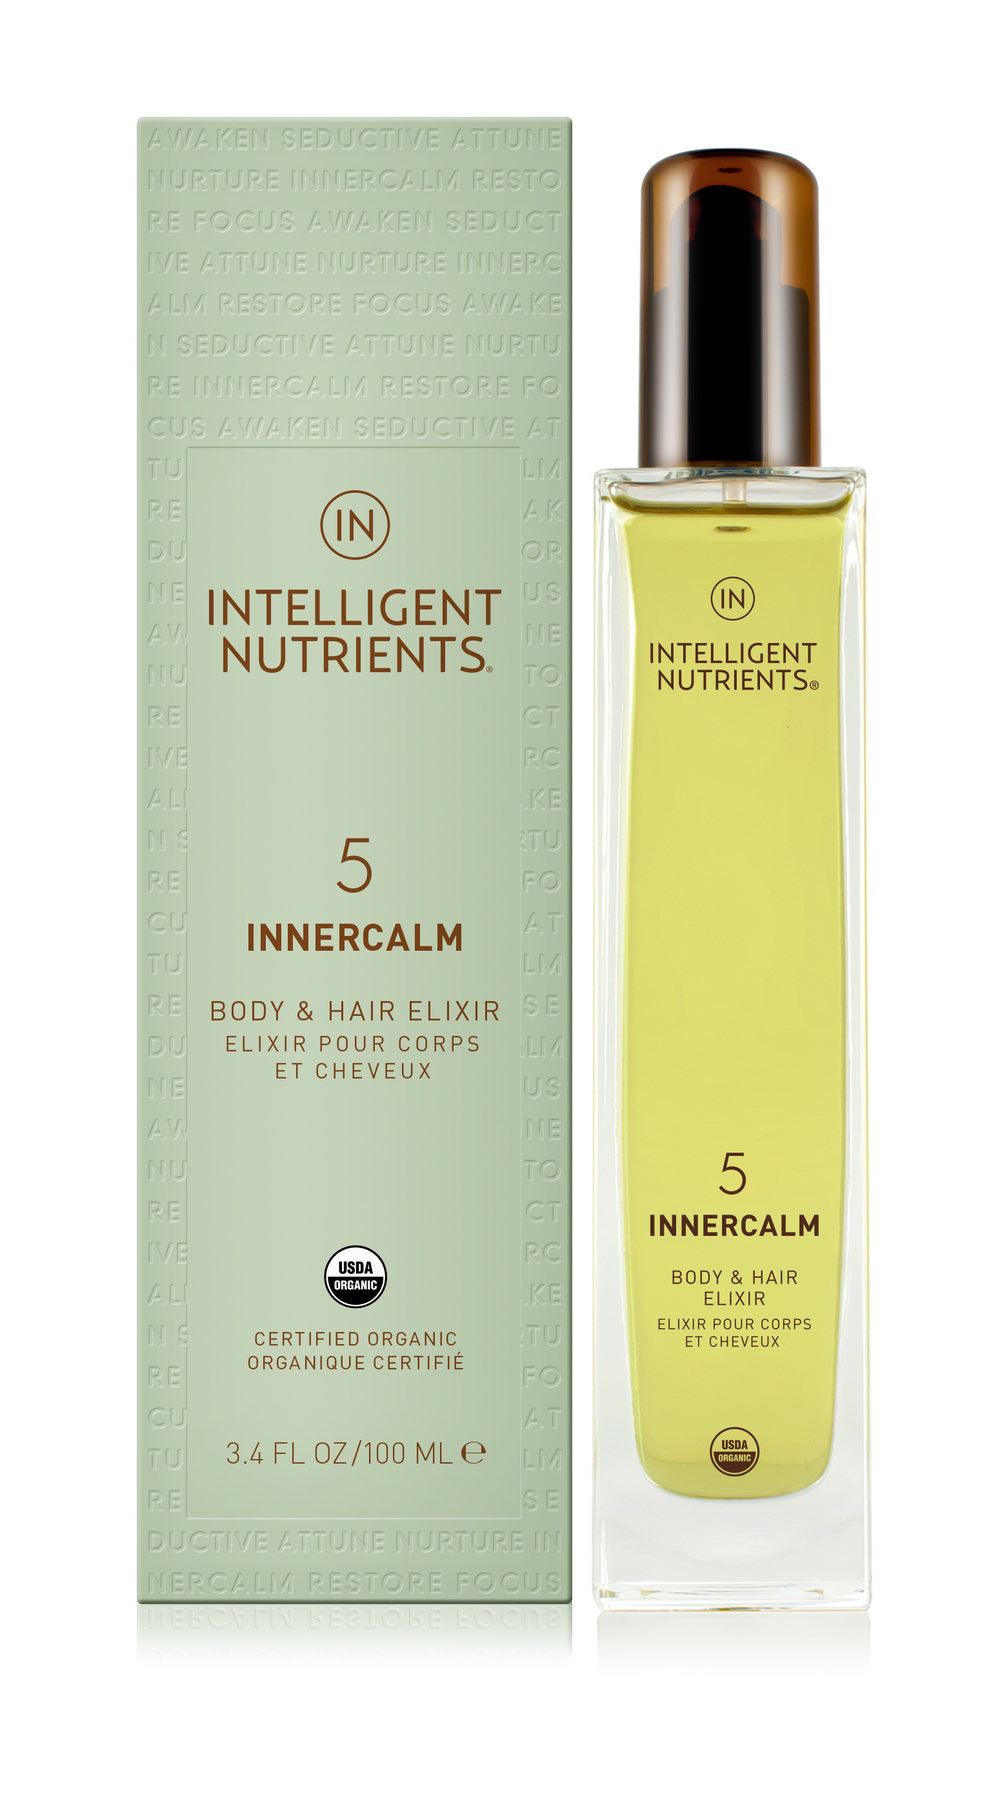 (5) Innercalm Body & Hair Elixir (DKK455/100ml)